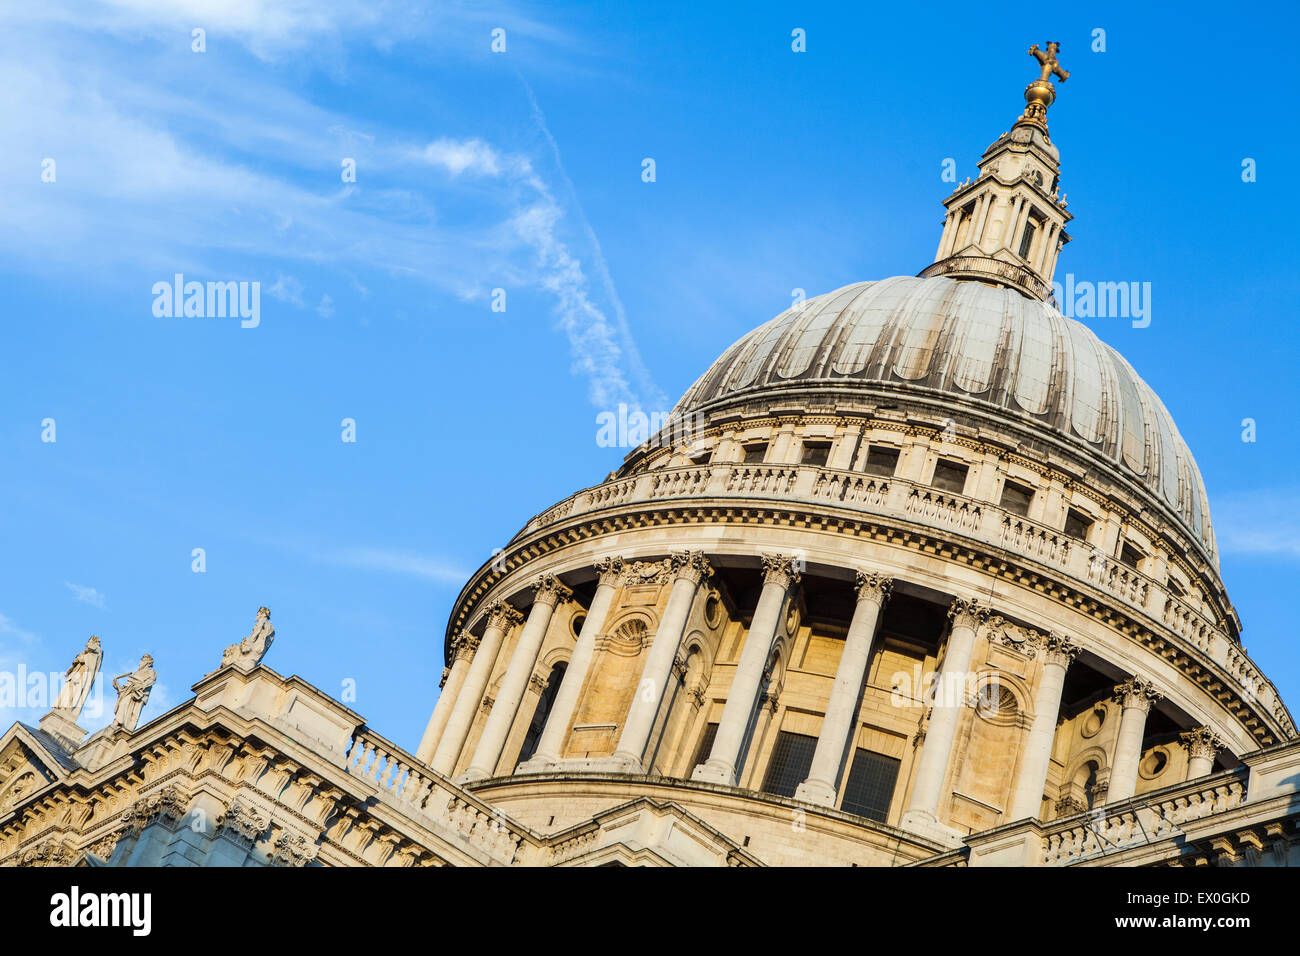 The dome of St. Pauls Cathedral in London. - Stock Image